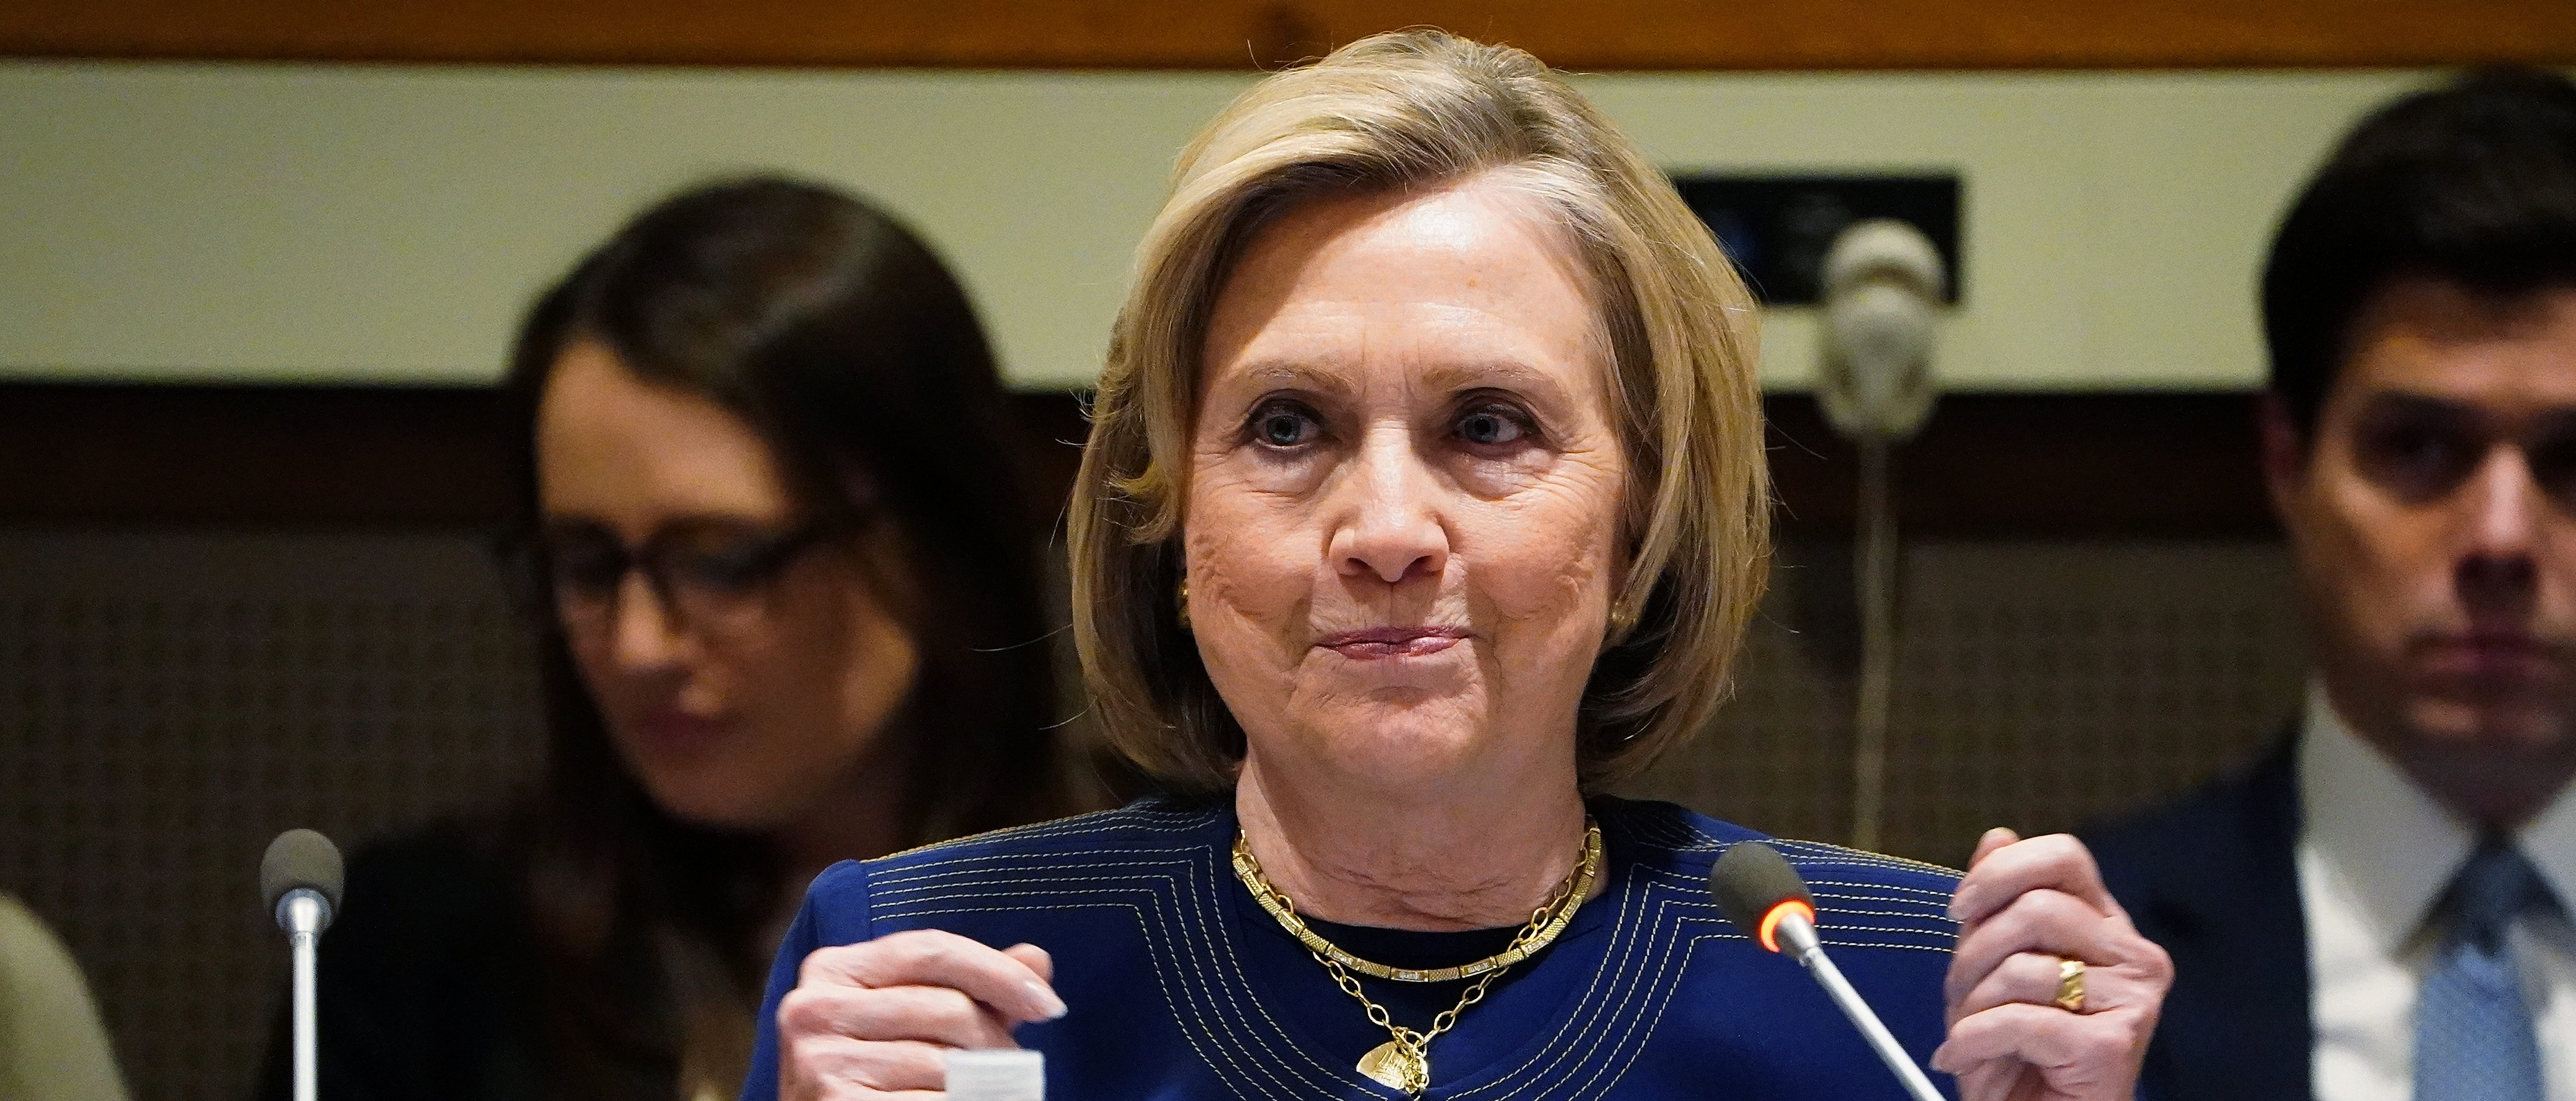 Former U.S. Secretary of State Hillary Clinton speaks at United Nations Headquarters on a panel about including women in the peace process in Afghanistan, in the Manhattan borough of New York City, New York, U.S., March 10, 2020. REUTERS/Carlo Allegri